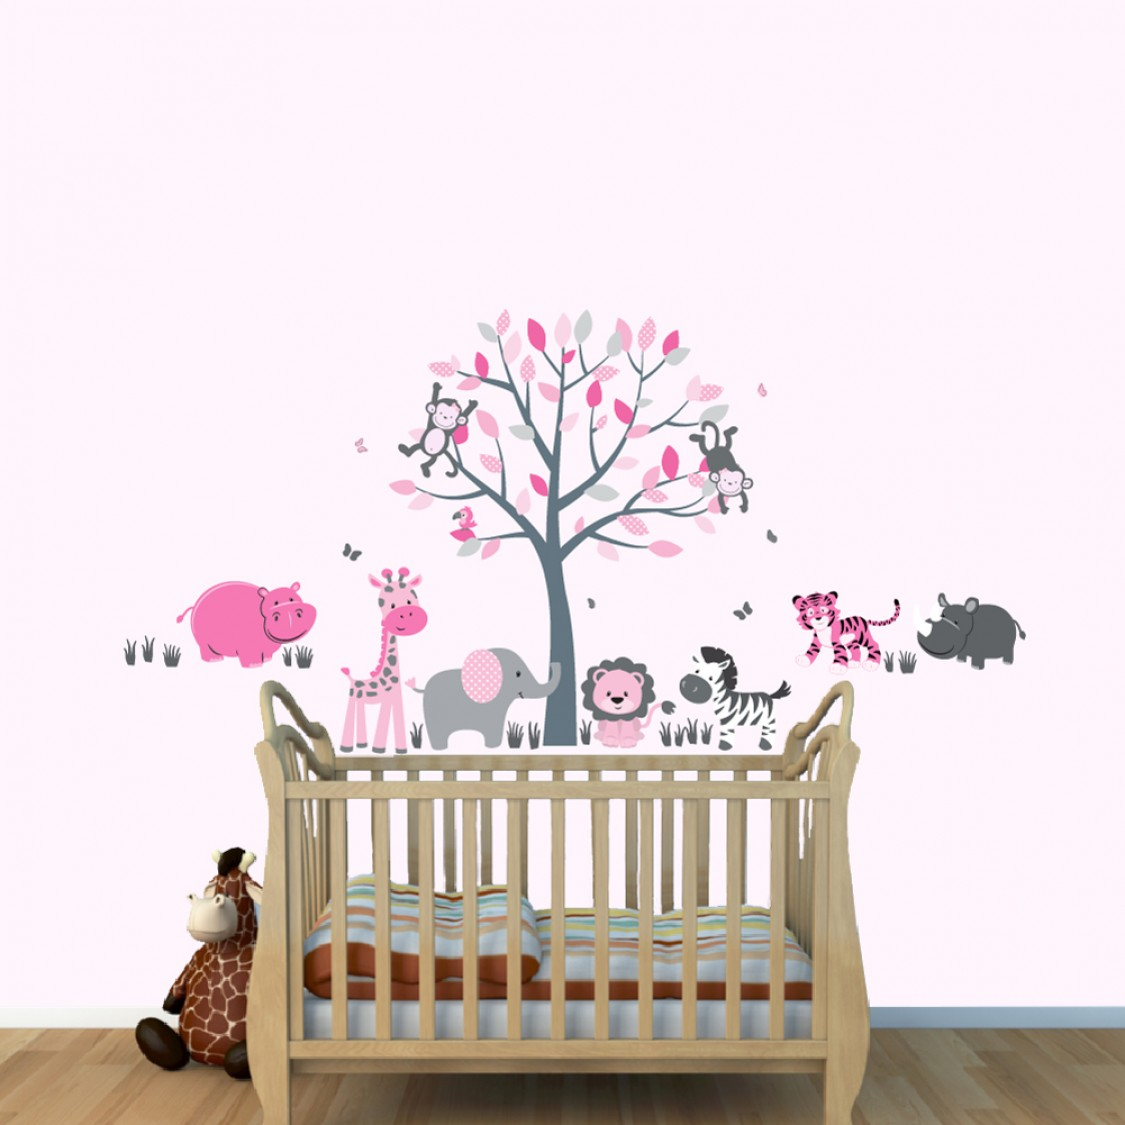 Pink and Gray Jungle Decals With Tiger Wall Decor For Boys Playroom